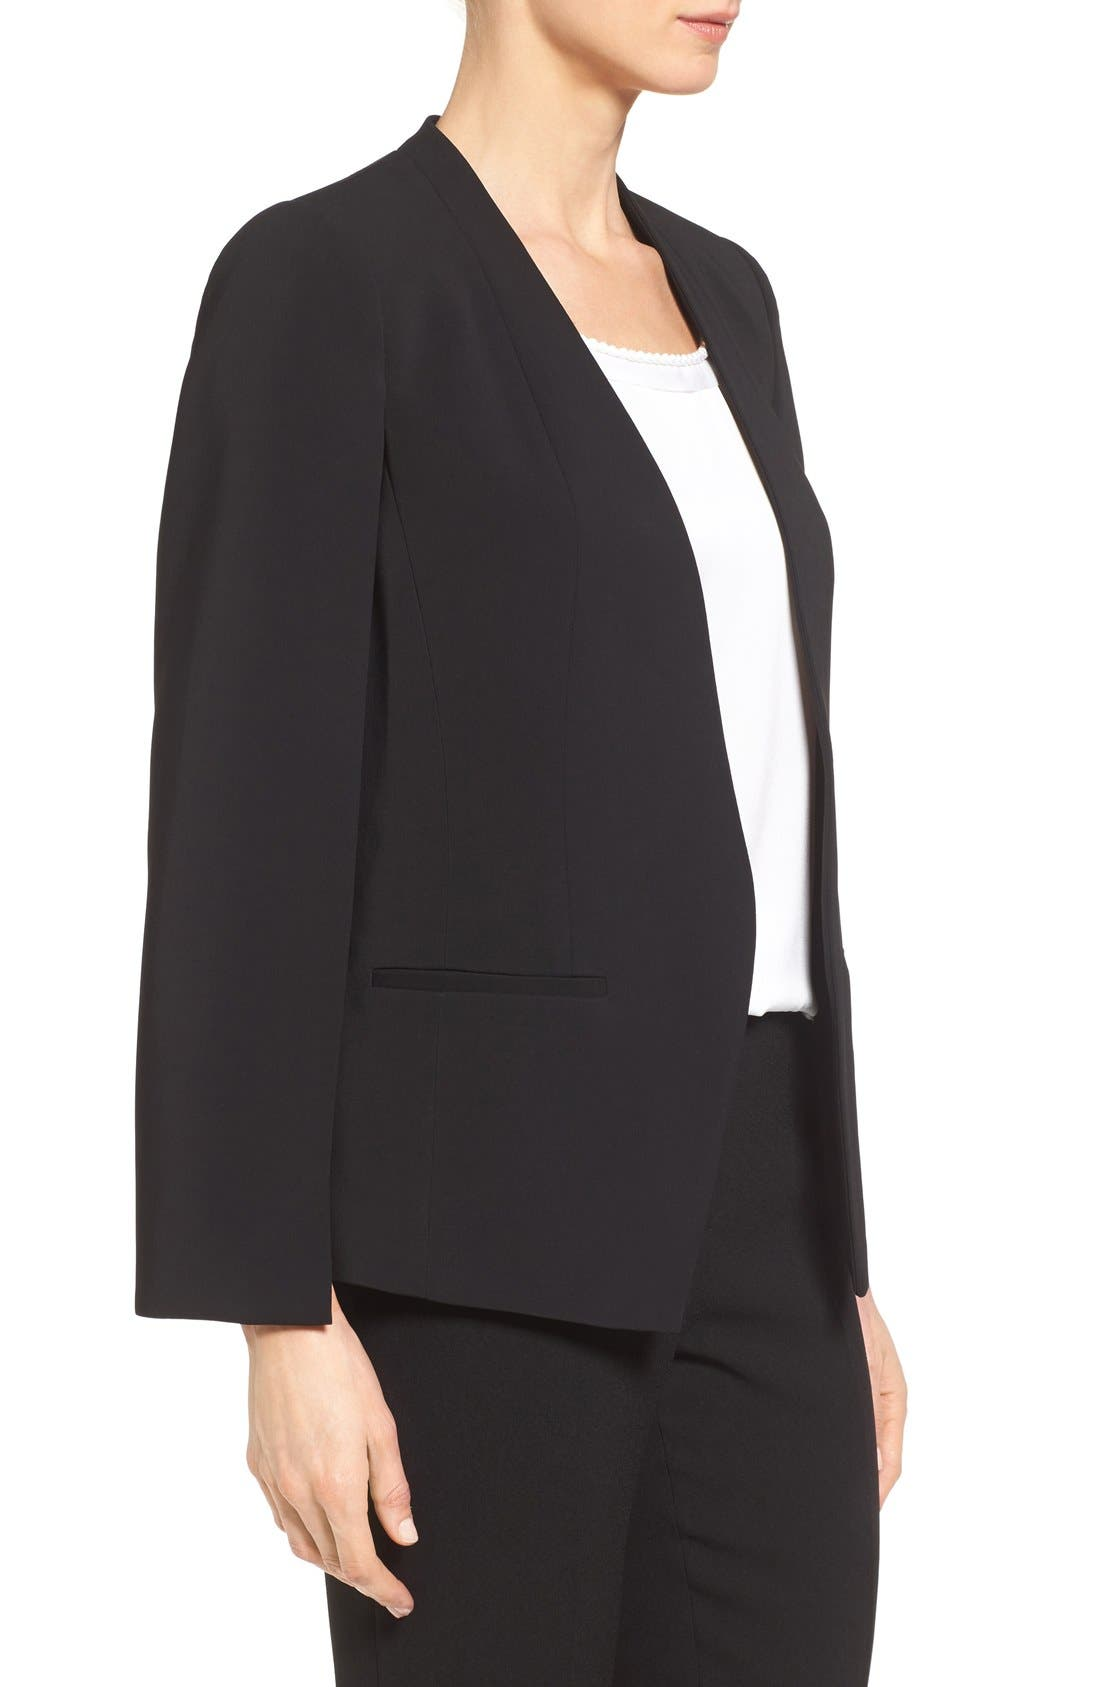 Alternate Image 3  - Kobi Halperin 'Perri' Open Front Blazer with Cape Sleeves